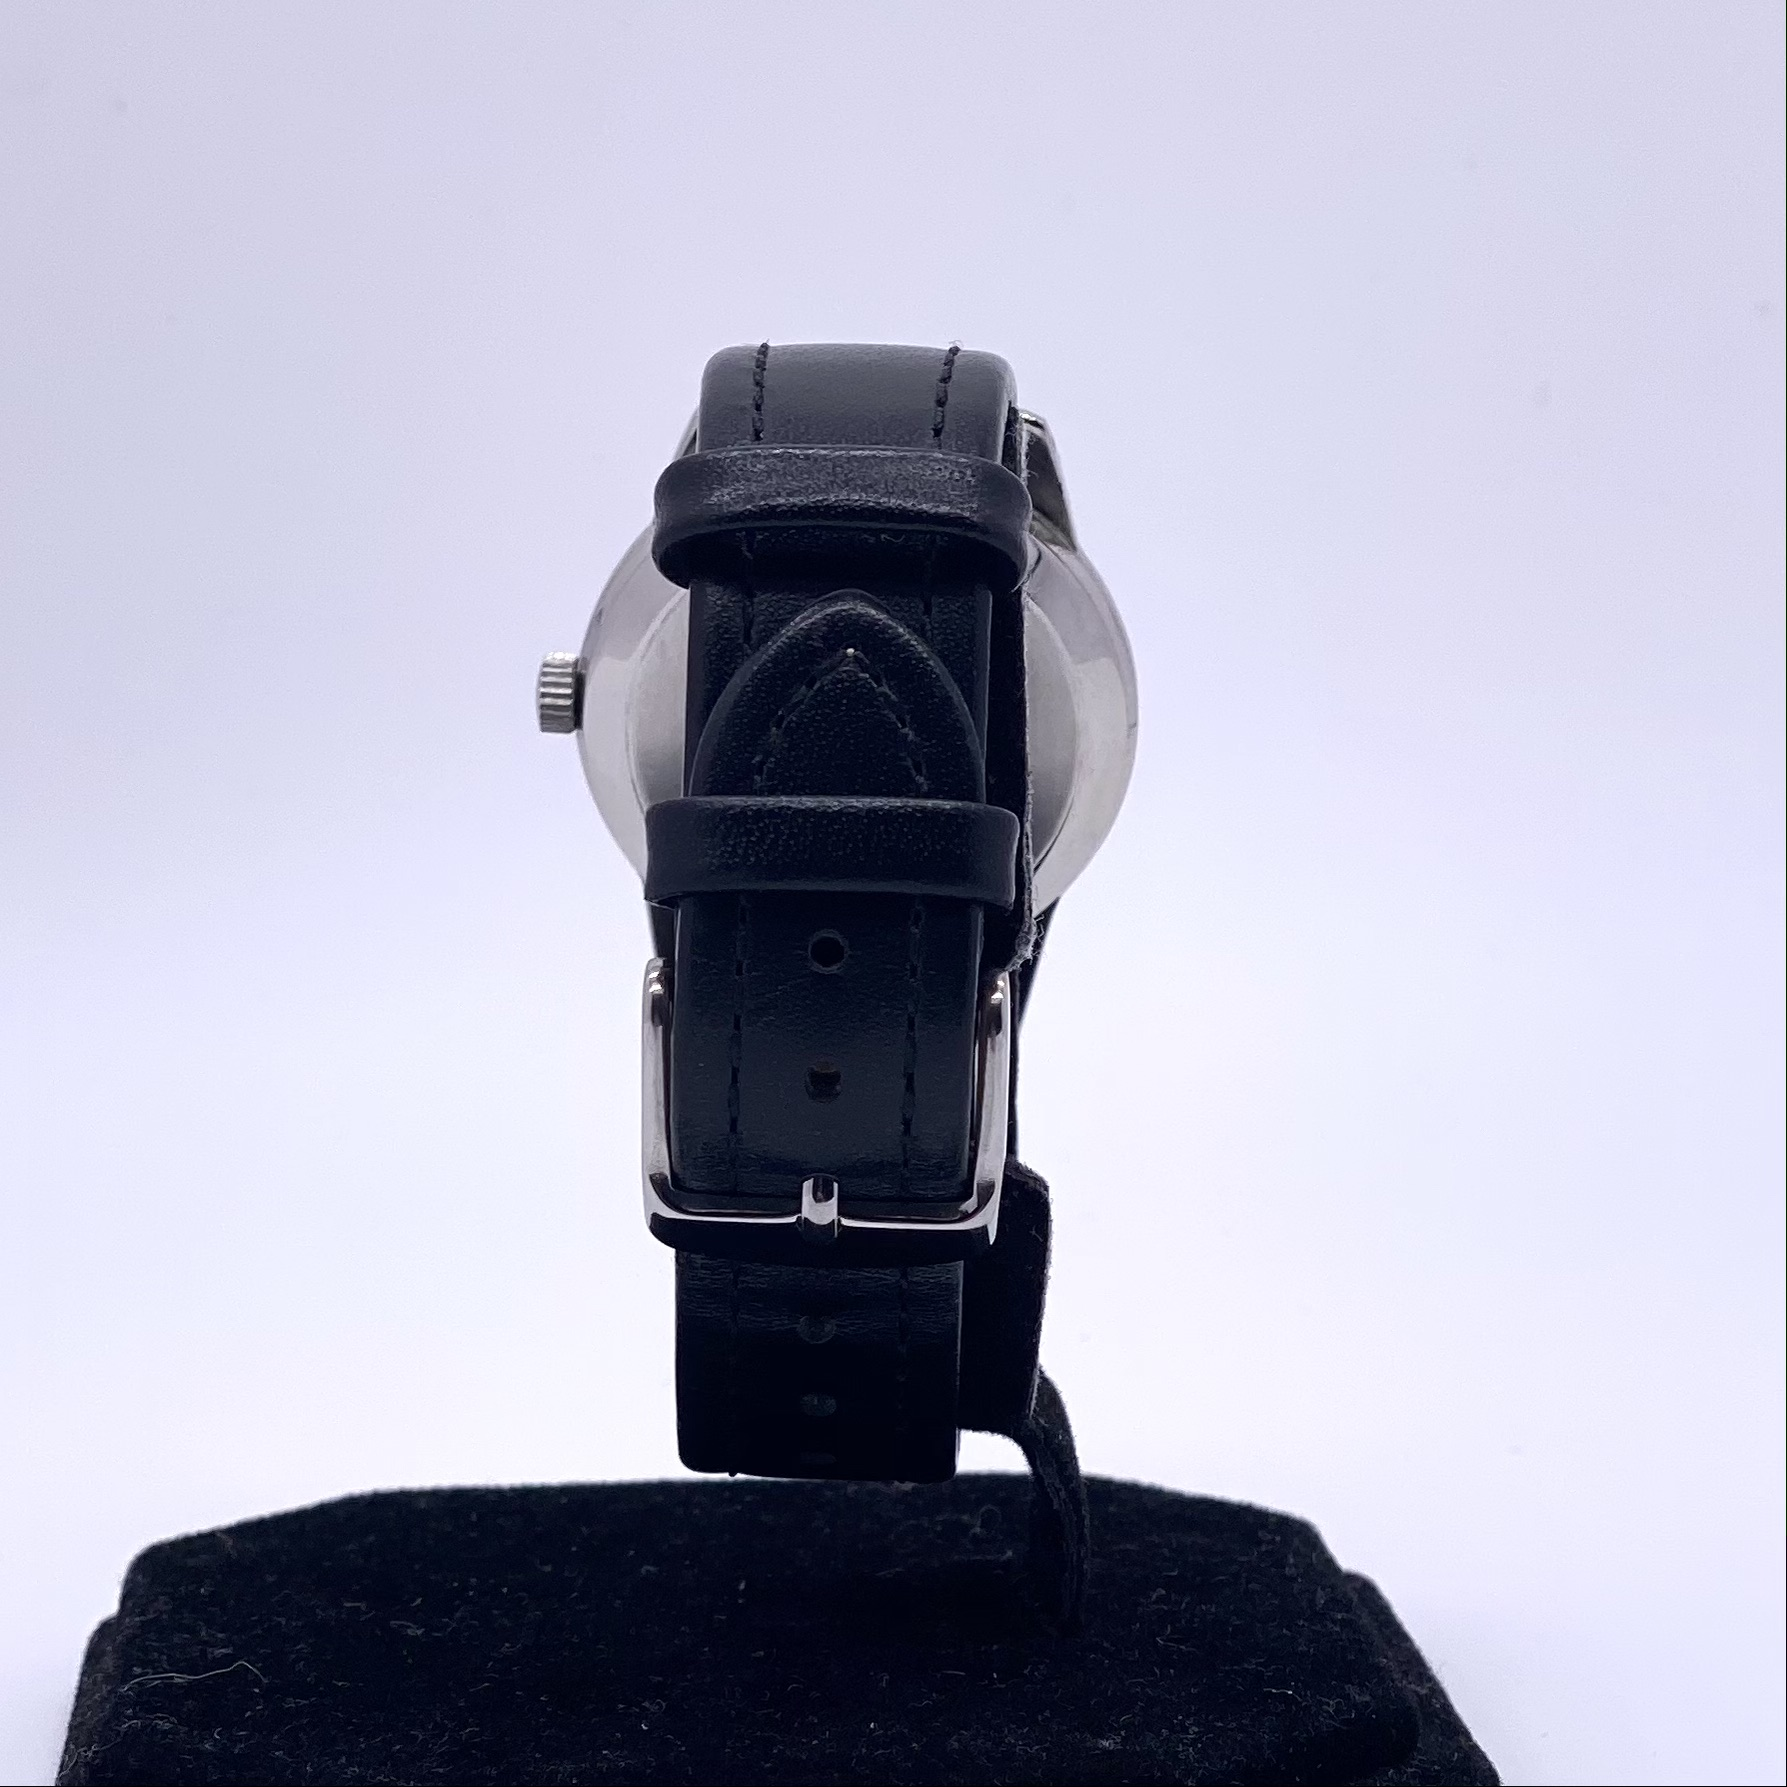 Tudor Prince Vintage Automatic Watch ref 1431 - Image 3 of 3